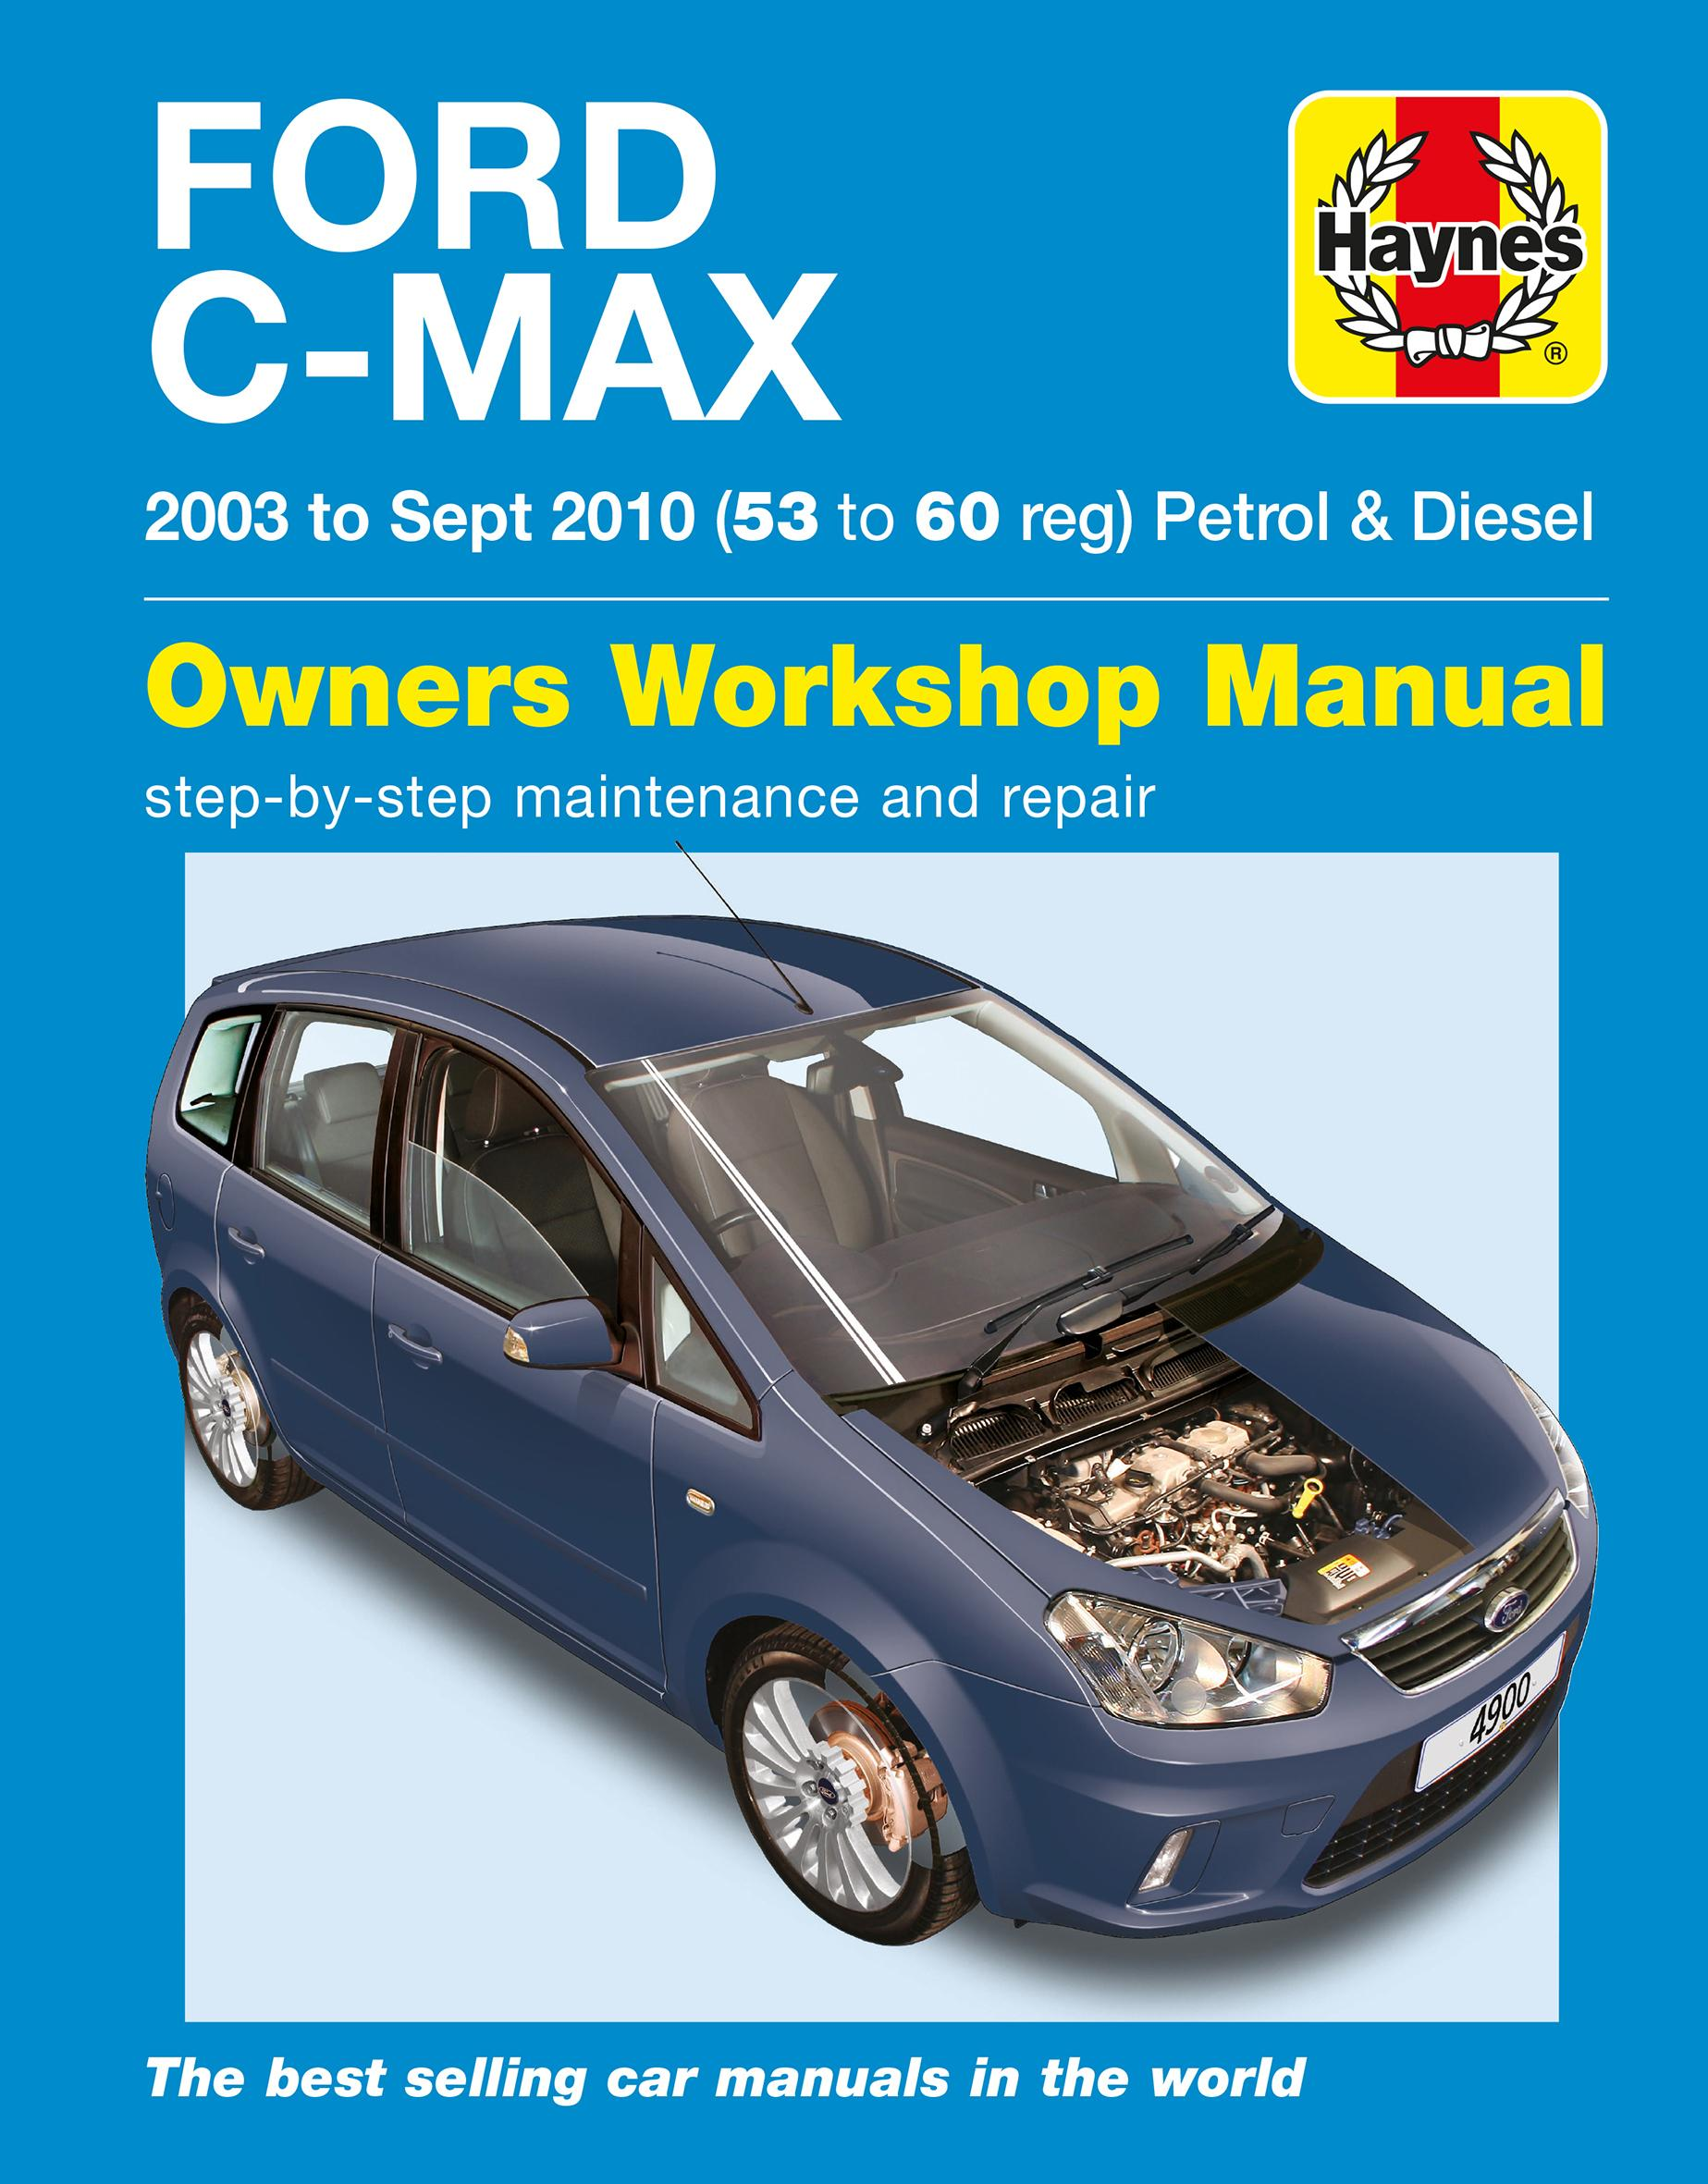 haynes ford c max manual 03 to10 rh halfords com